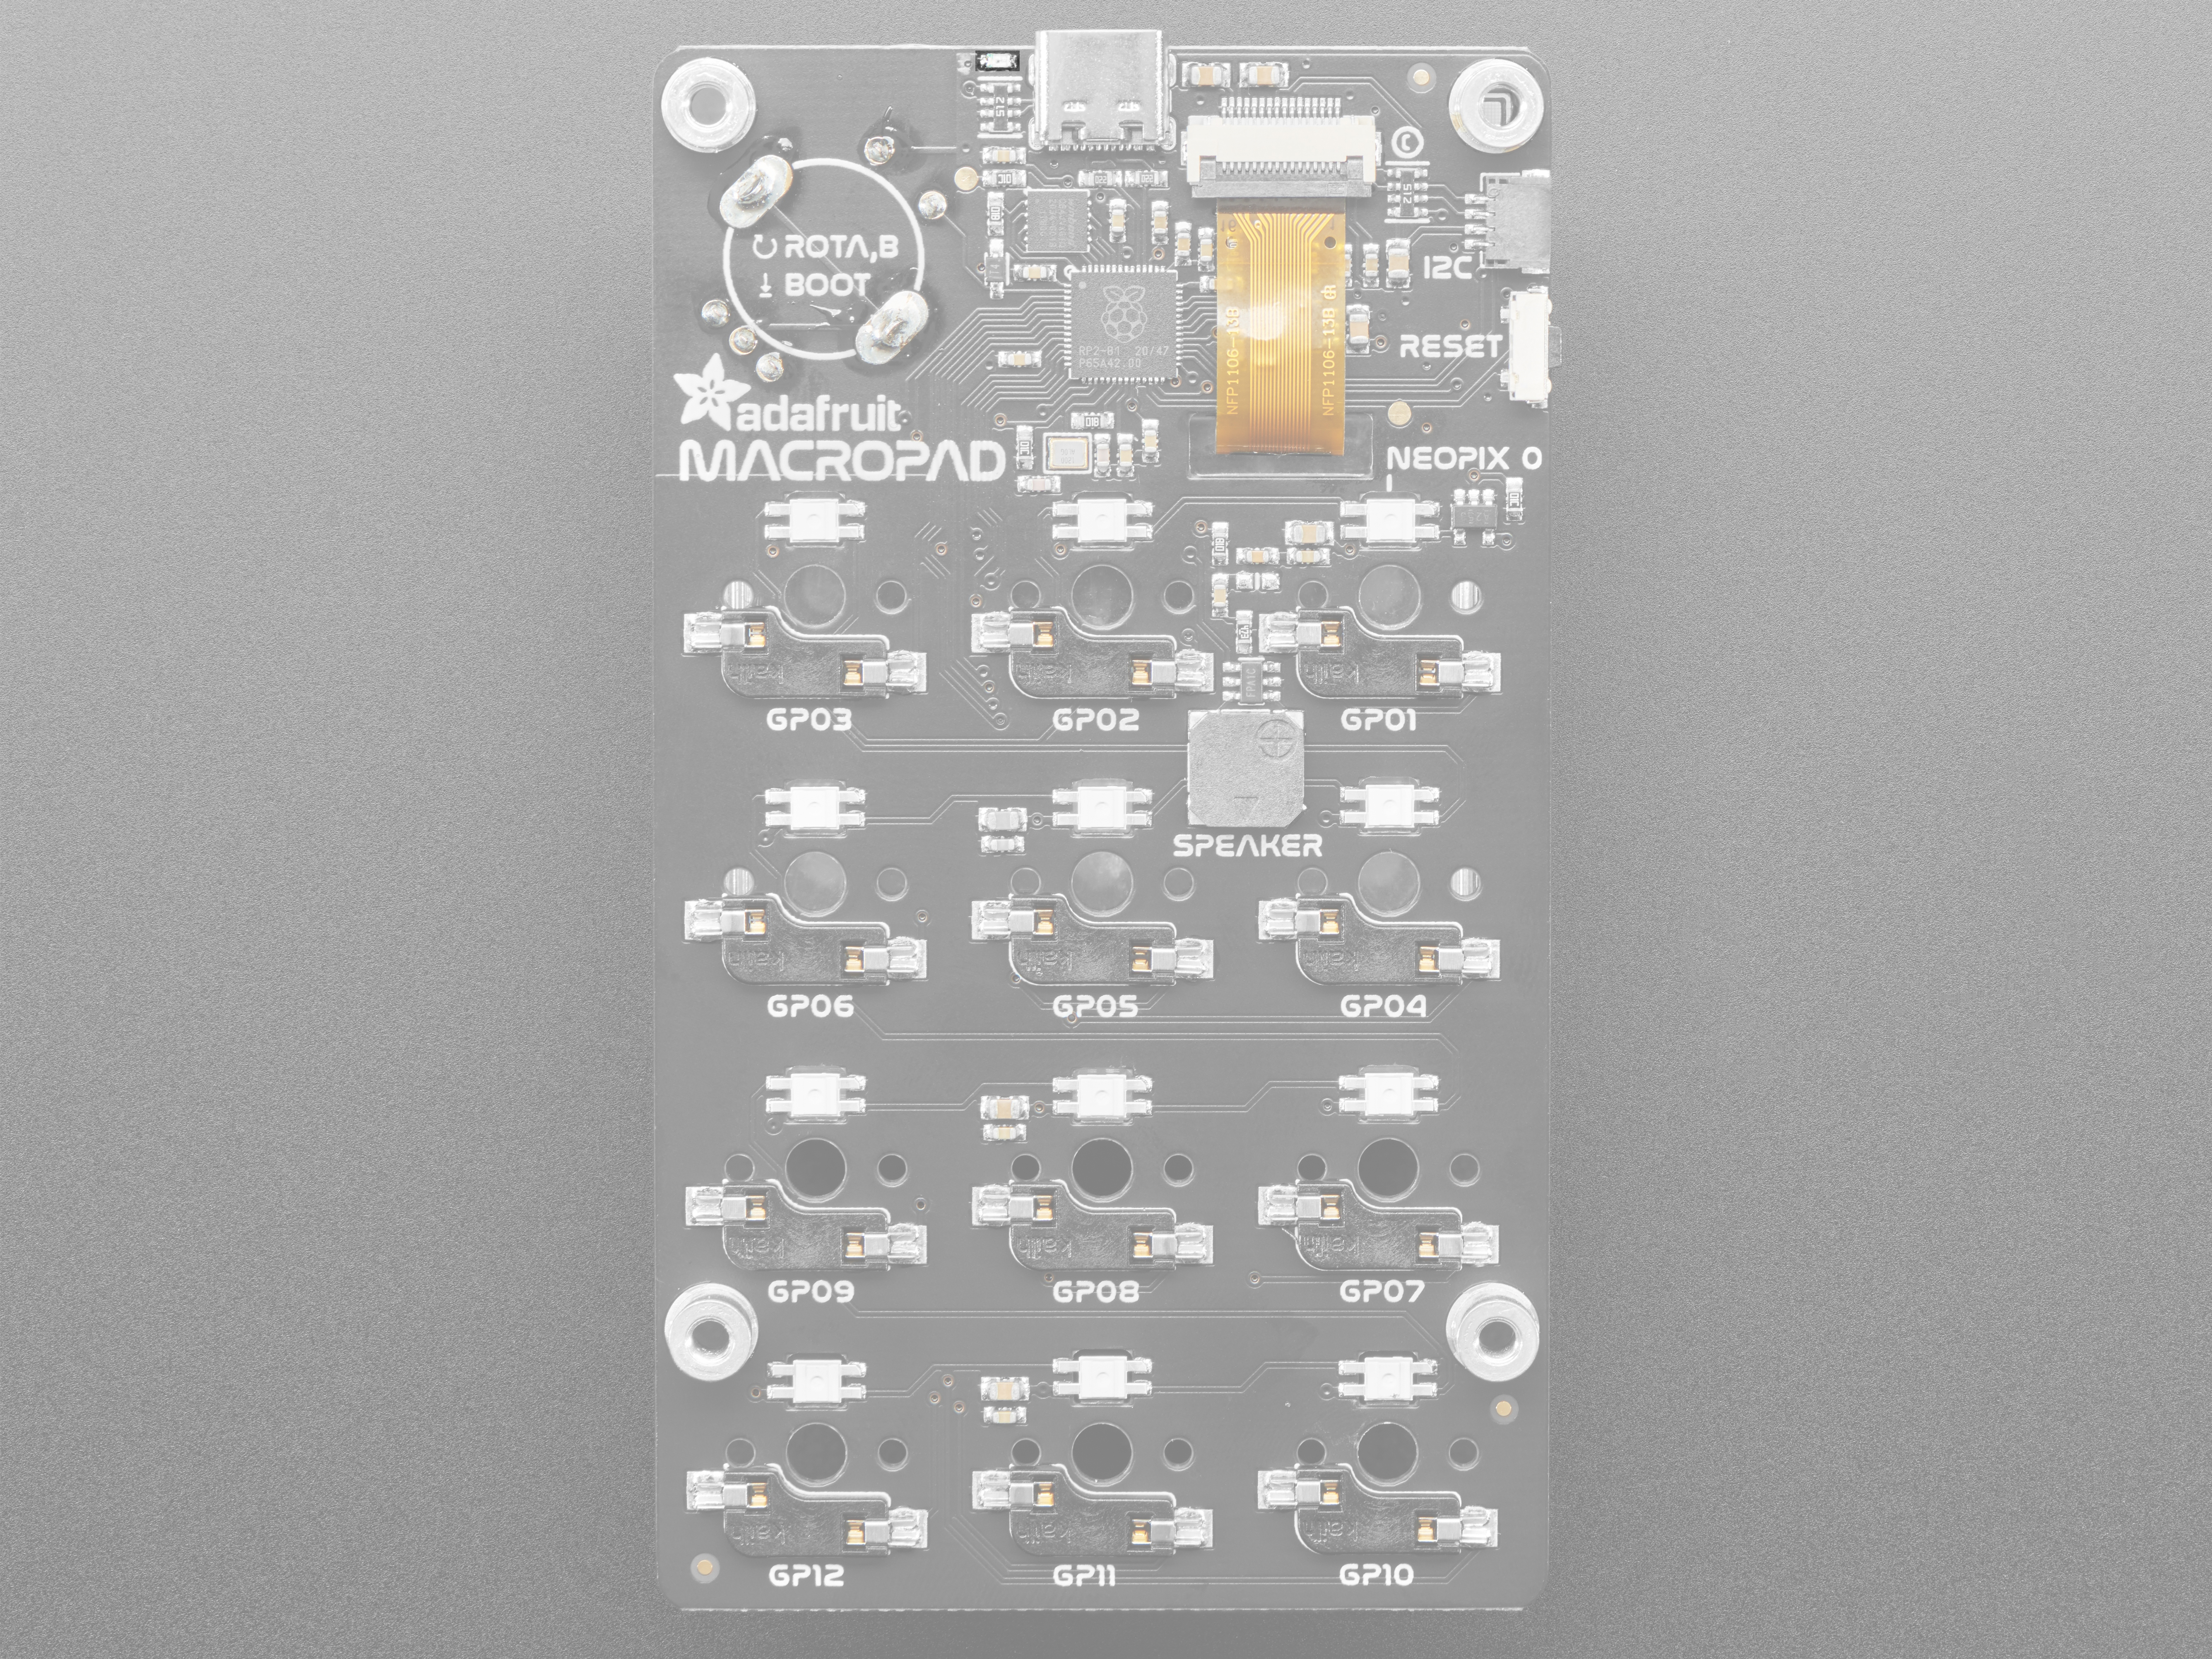 adafruit_products_MacroPad_pinouts_red_LED.jpg